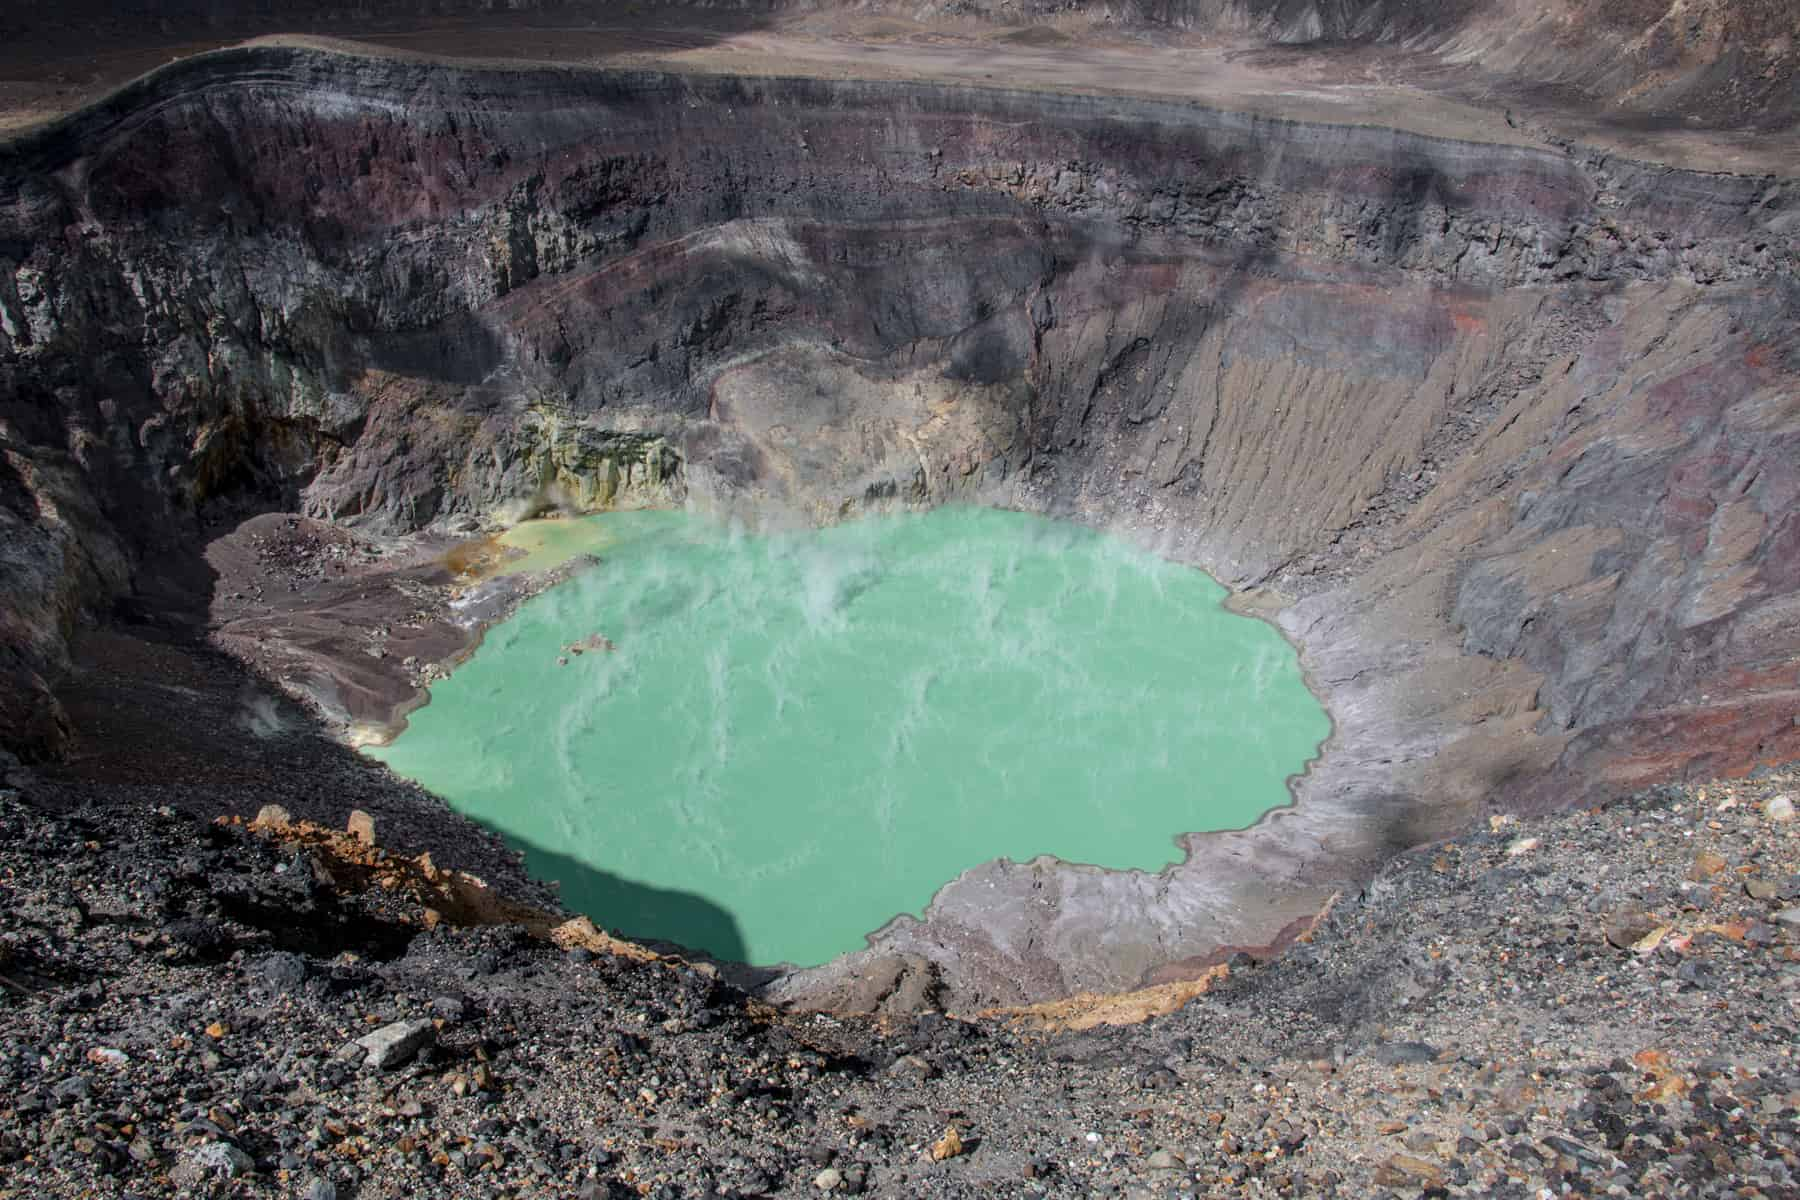 Turquoise lake with steam surrounded by rocks and dirt at Santa Ana Volcano El Salvador